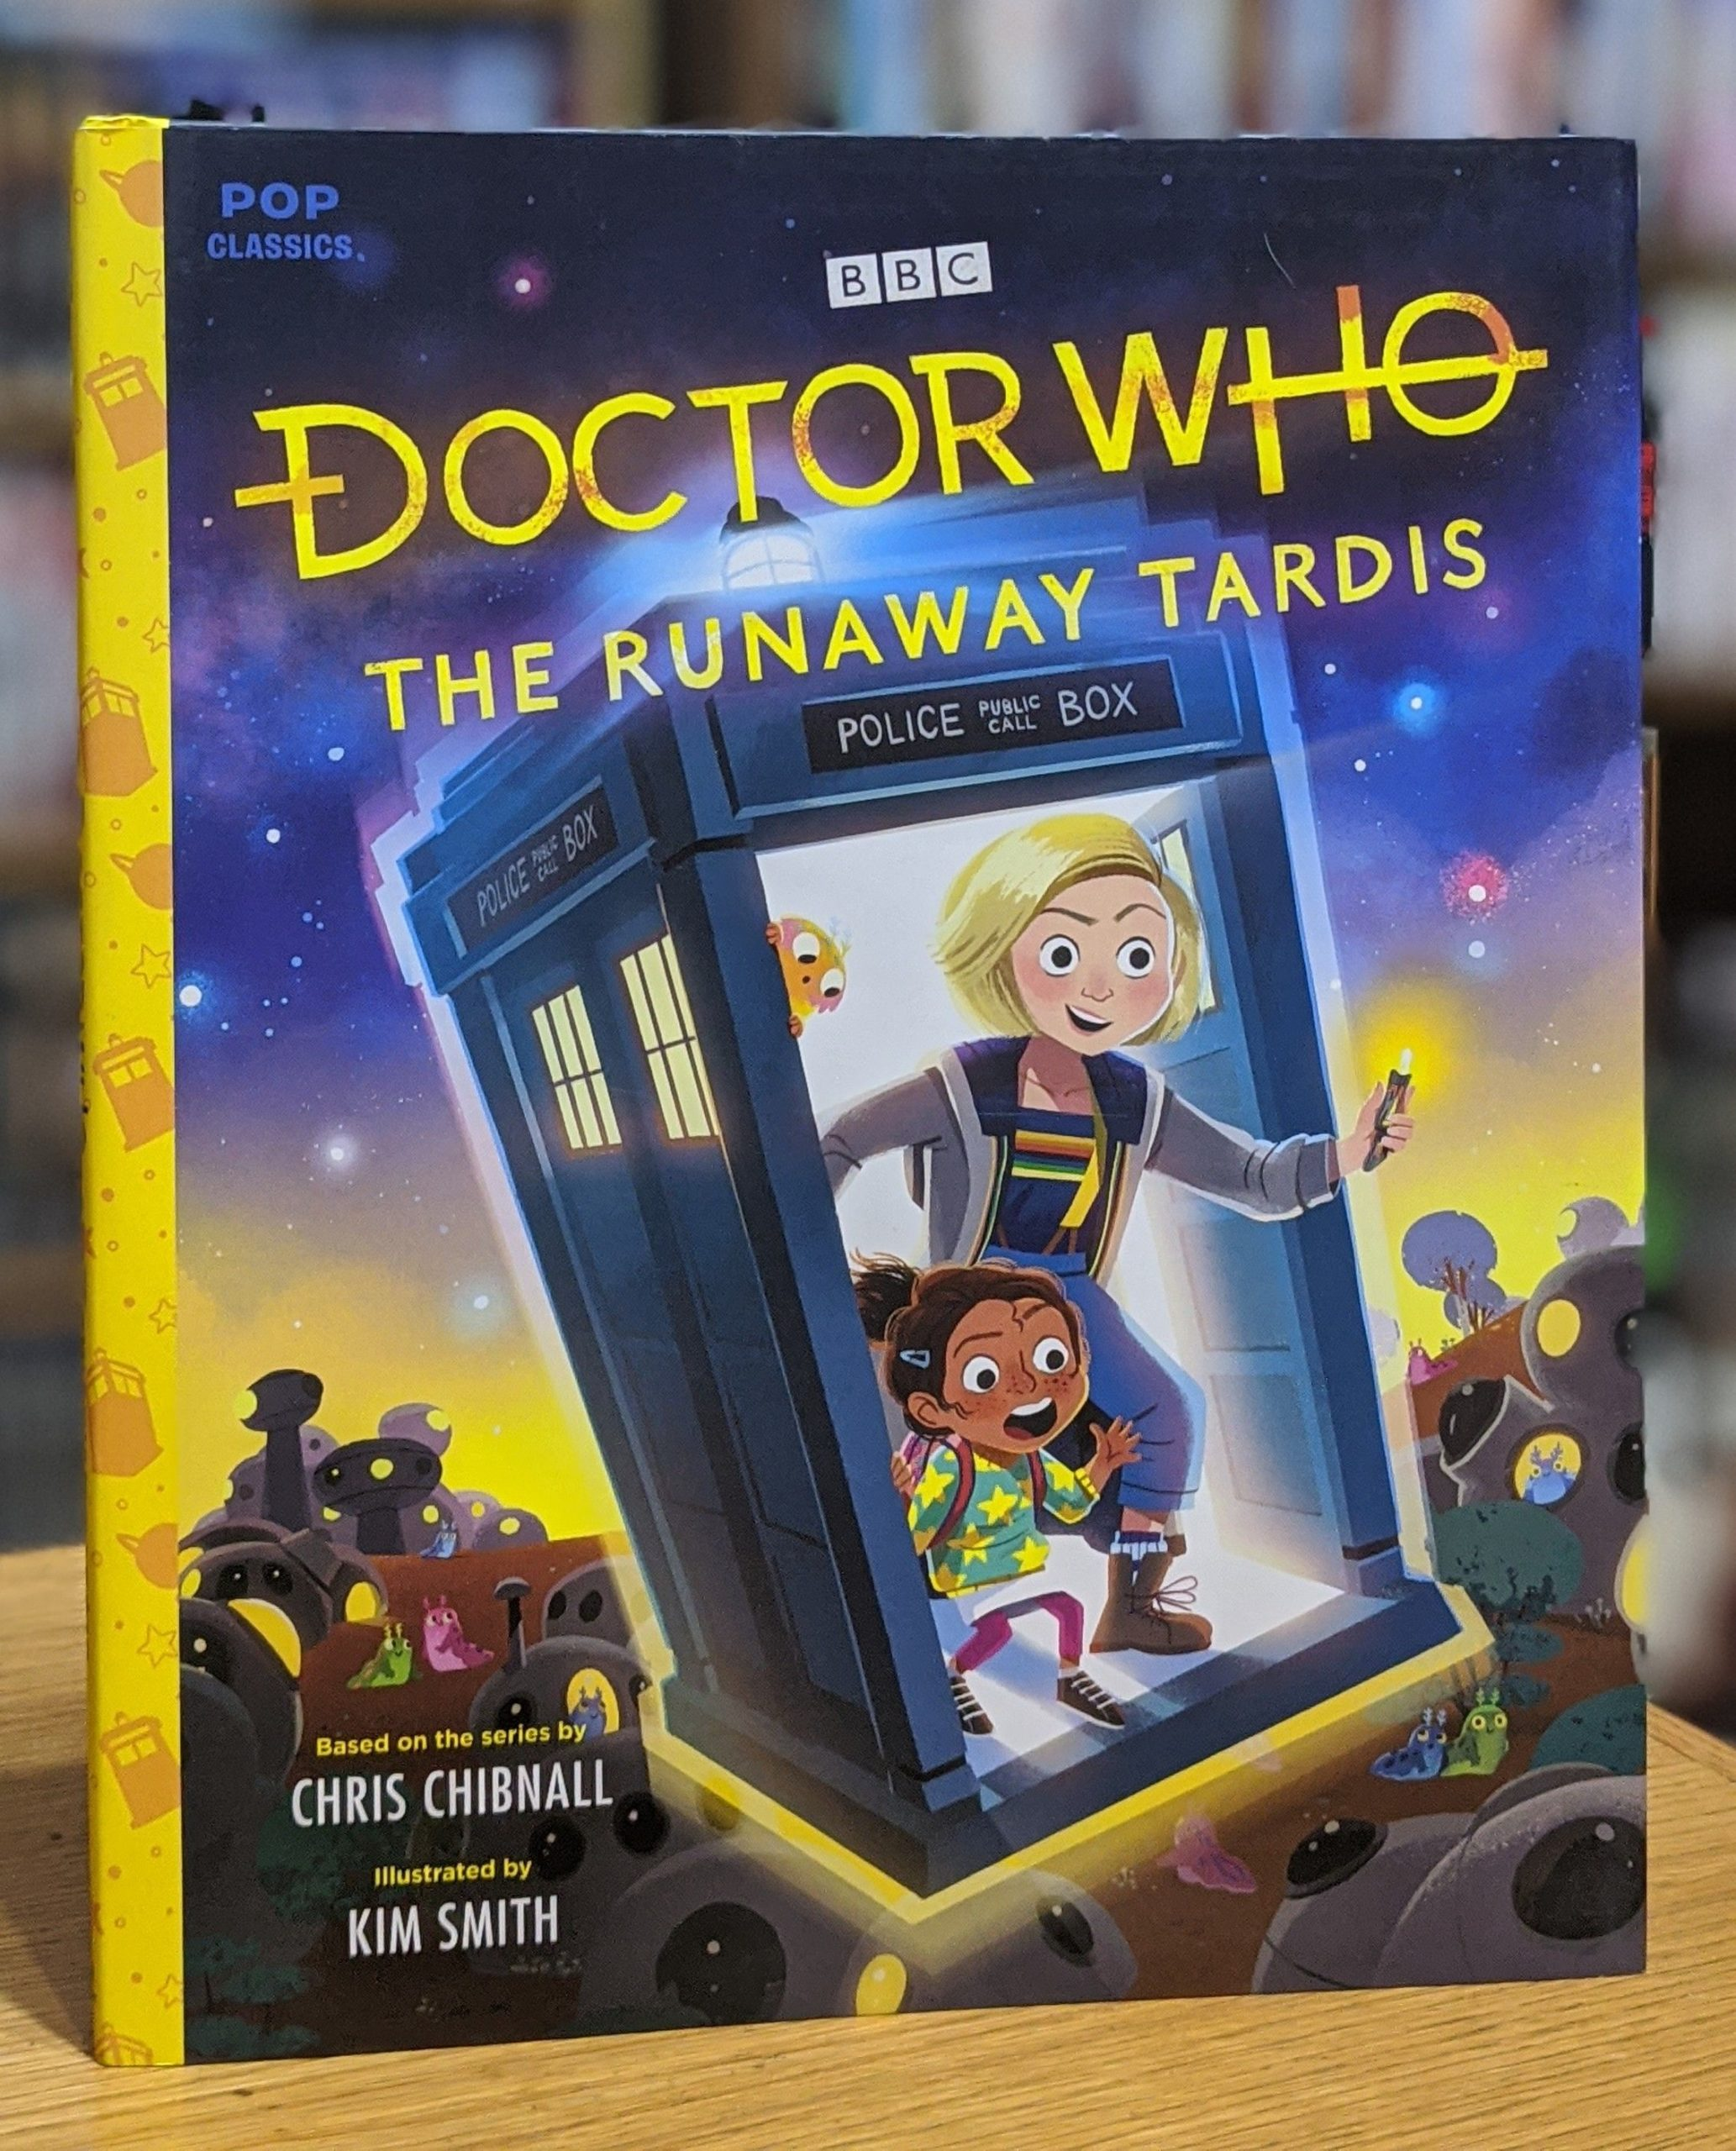 Friday Reads: Doctor Who: The Runaway TARDIS by Chris Chibnall & Kim Smith